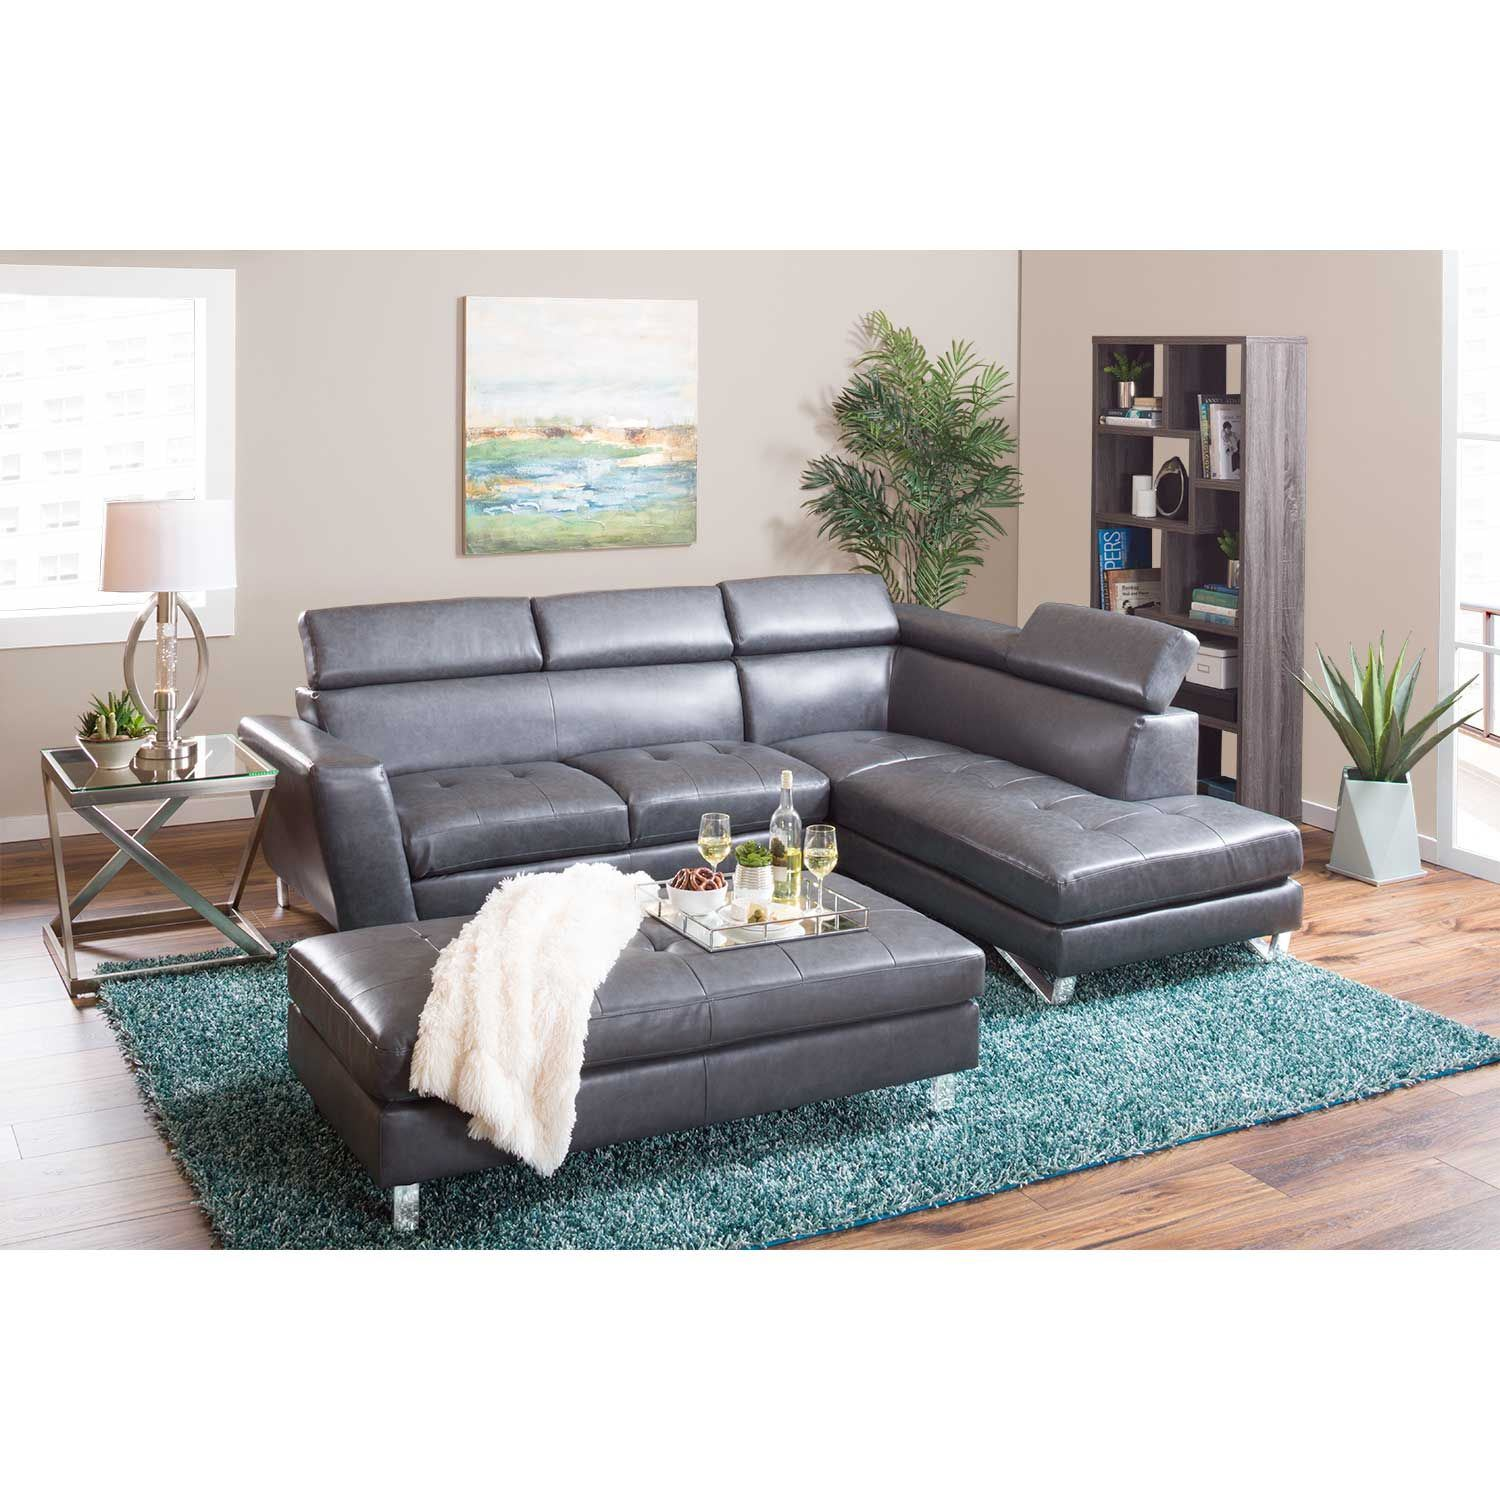 Picture of gray bonded leather ottoman